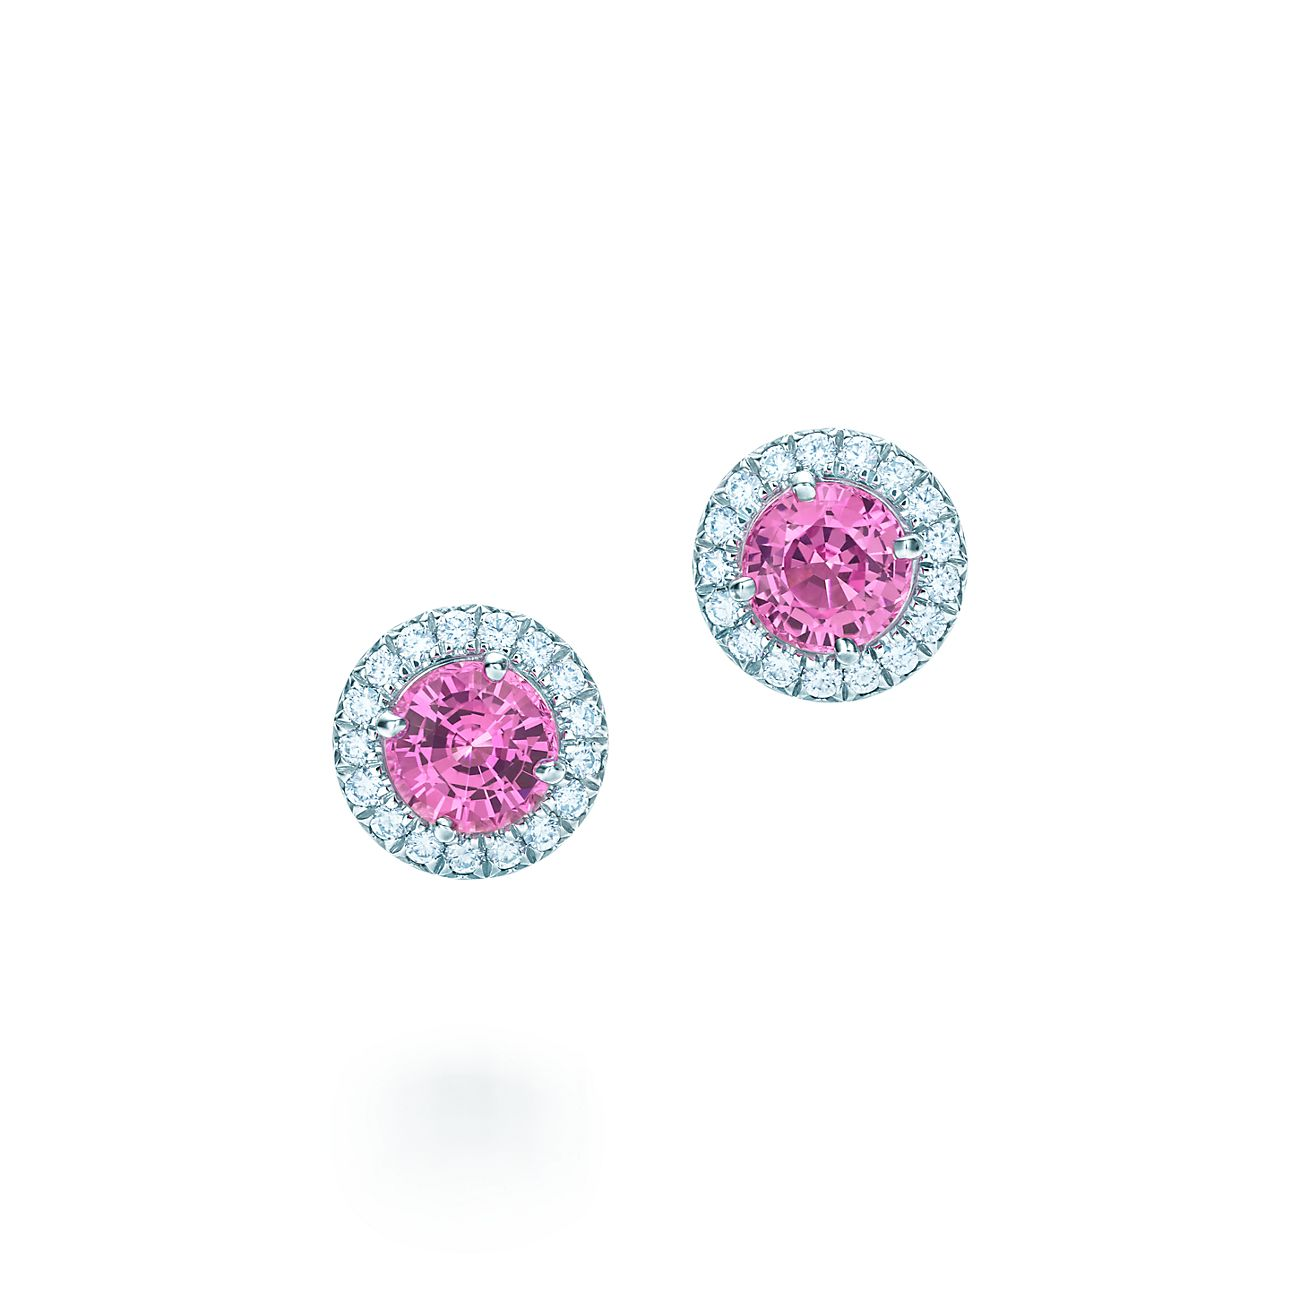 Tiffany Soleste Earrings In Platinum With Pink Sapphires